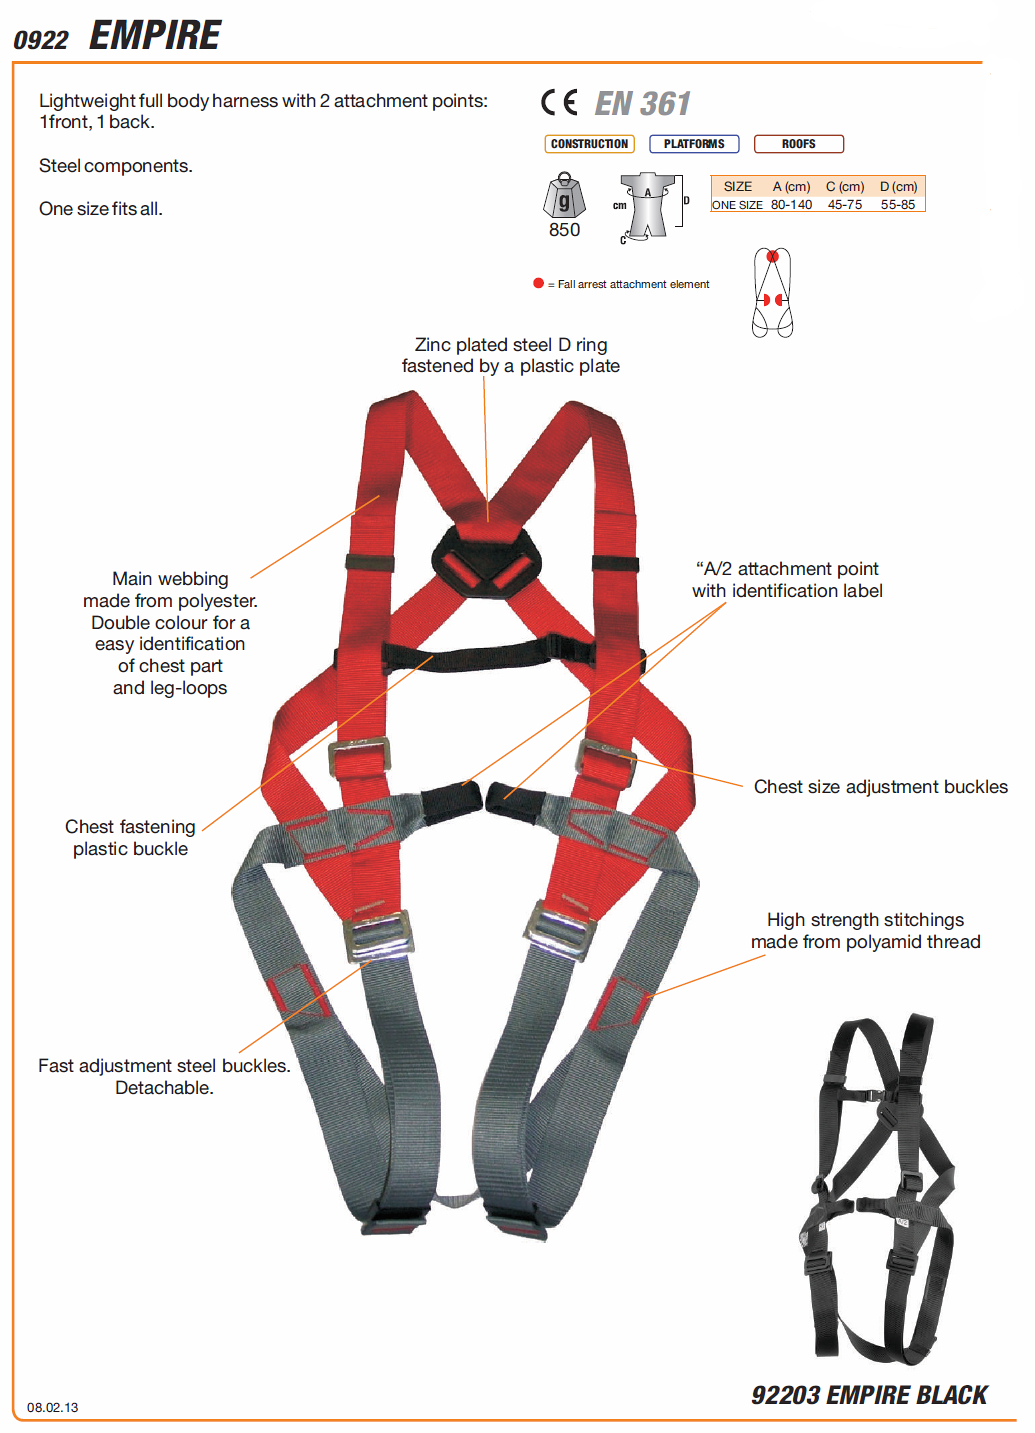 Camp 922 Empire Harness Max Safety Amp Engineering